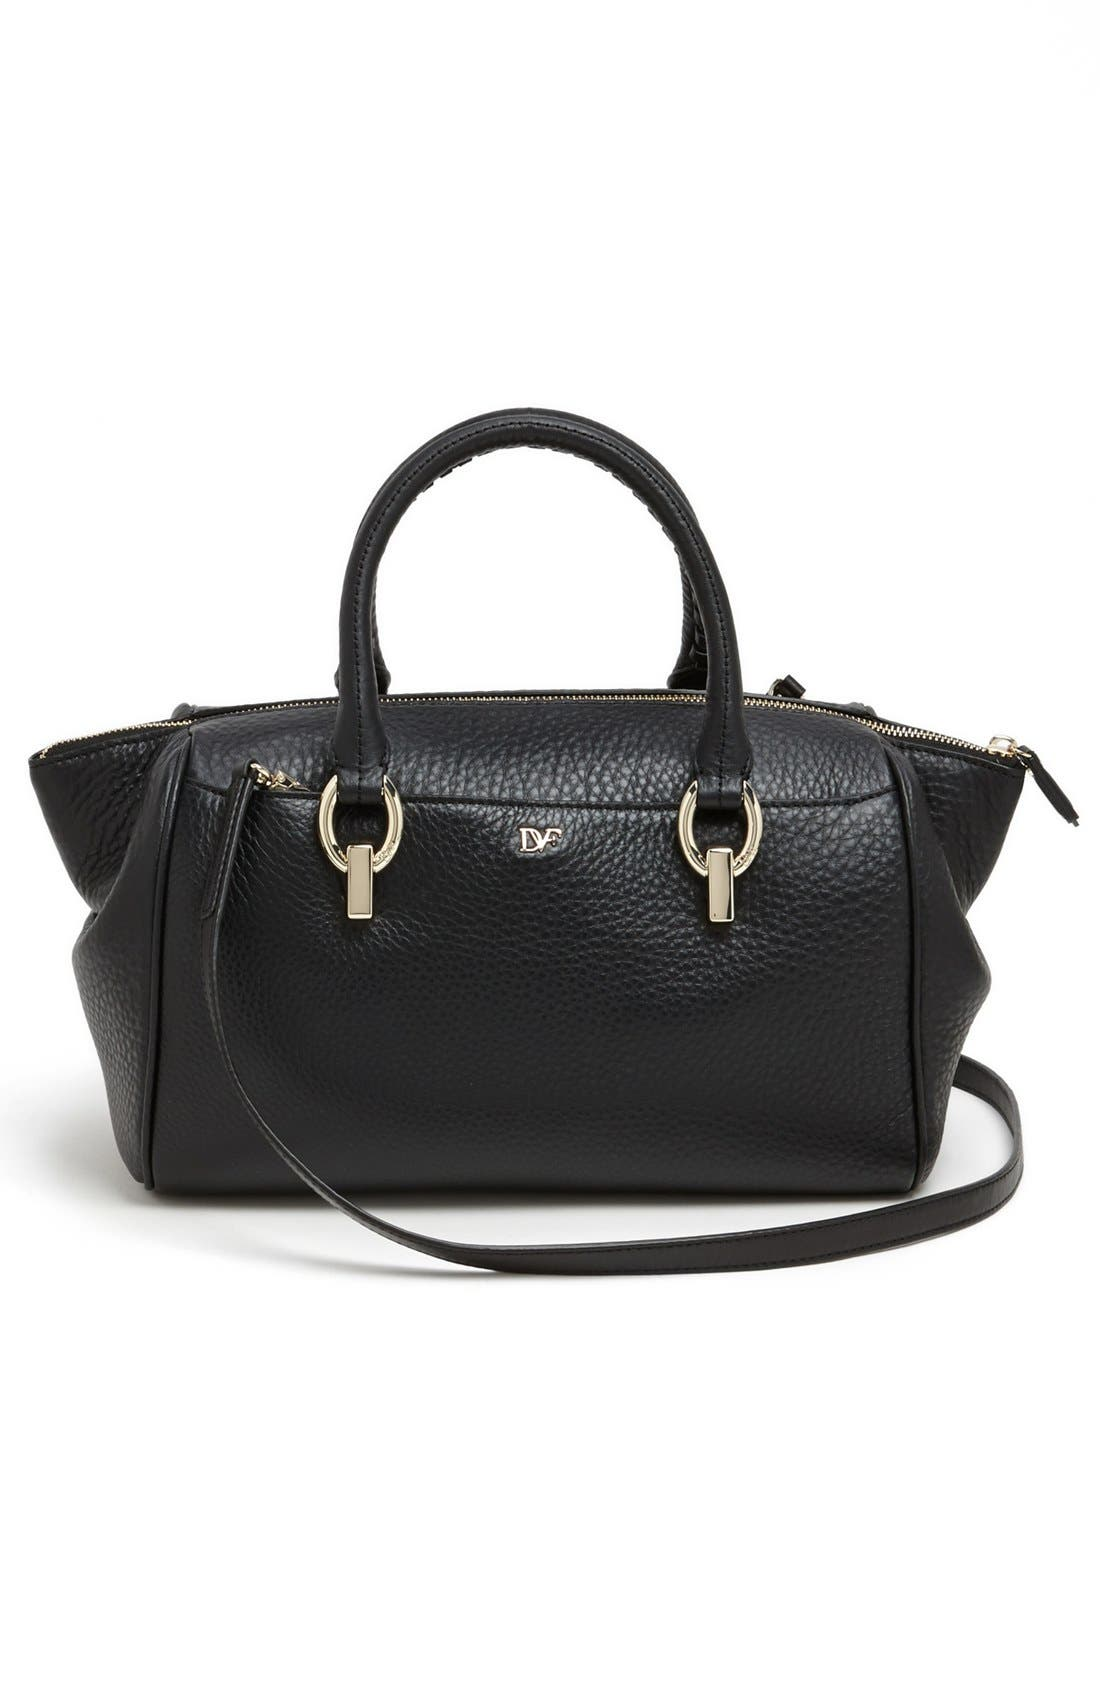 Alternate Image 3  - Diane von Furstenberg 'Small Sutra' Leather Satchel